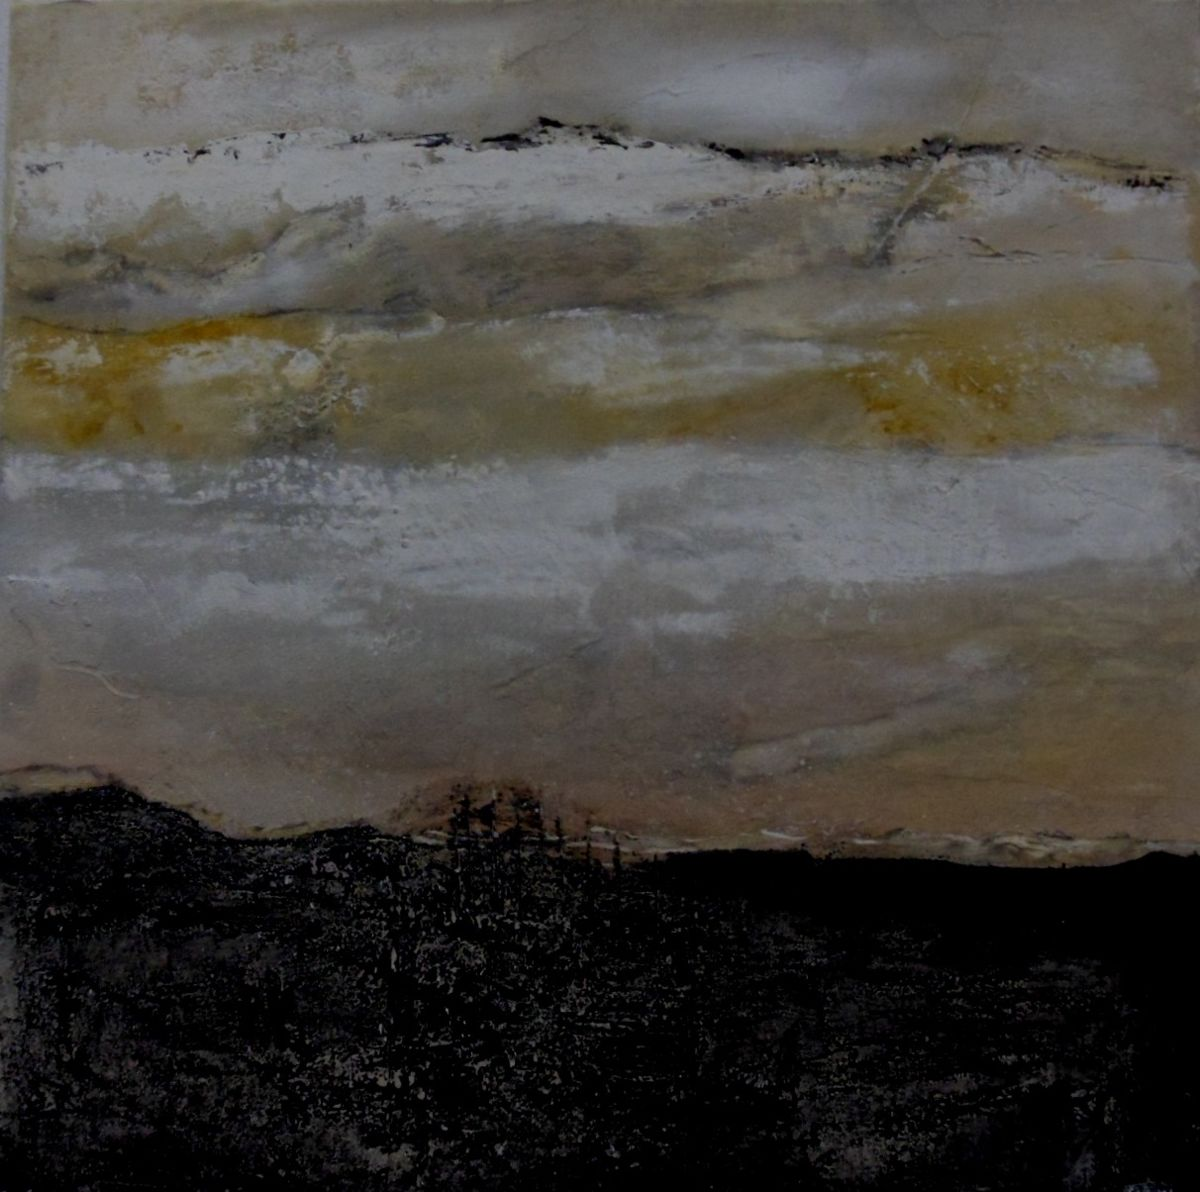 50 x 50 cm - ©2012 by Anonymous Artist